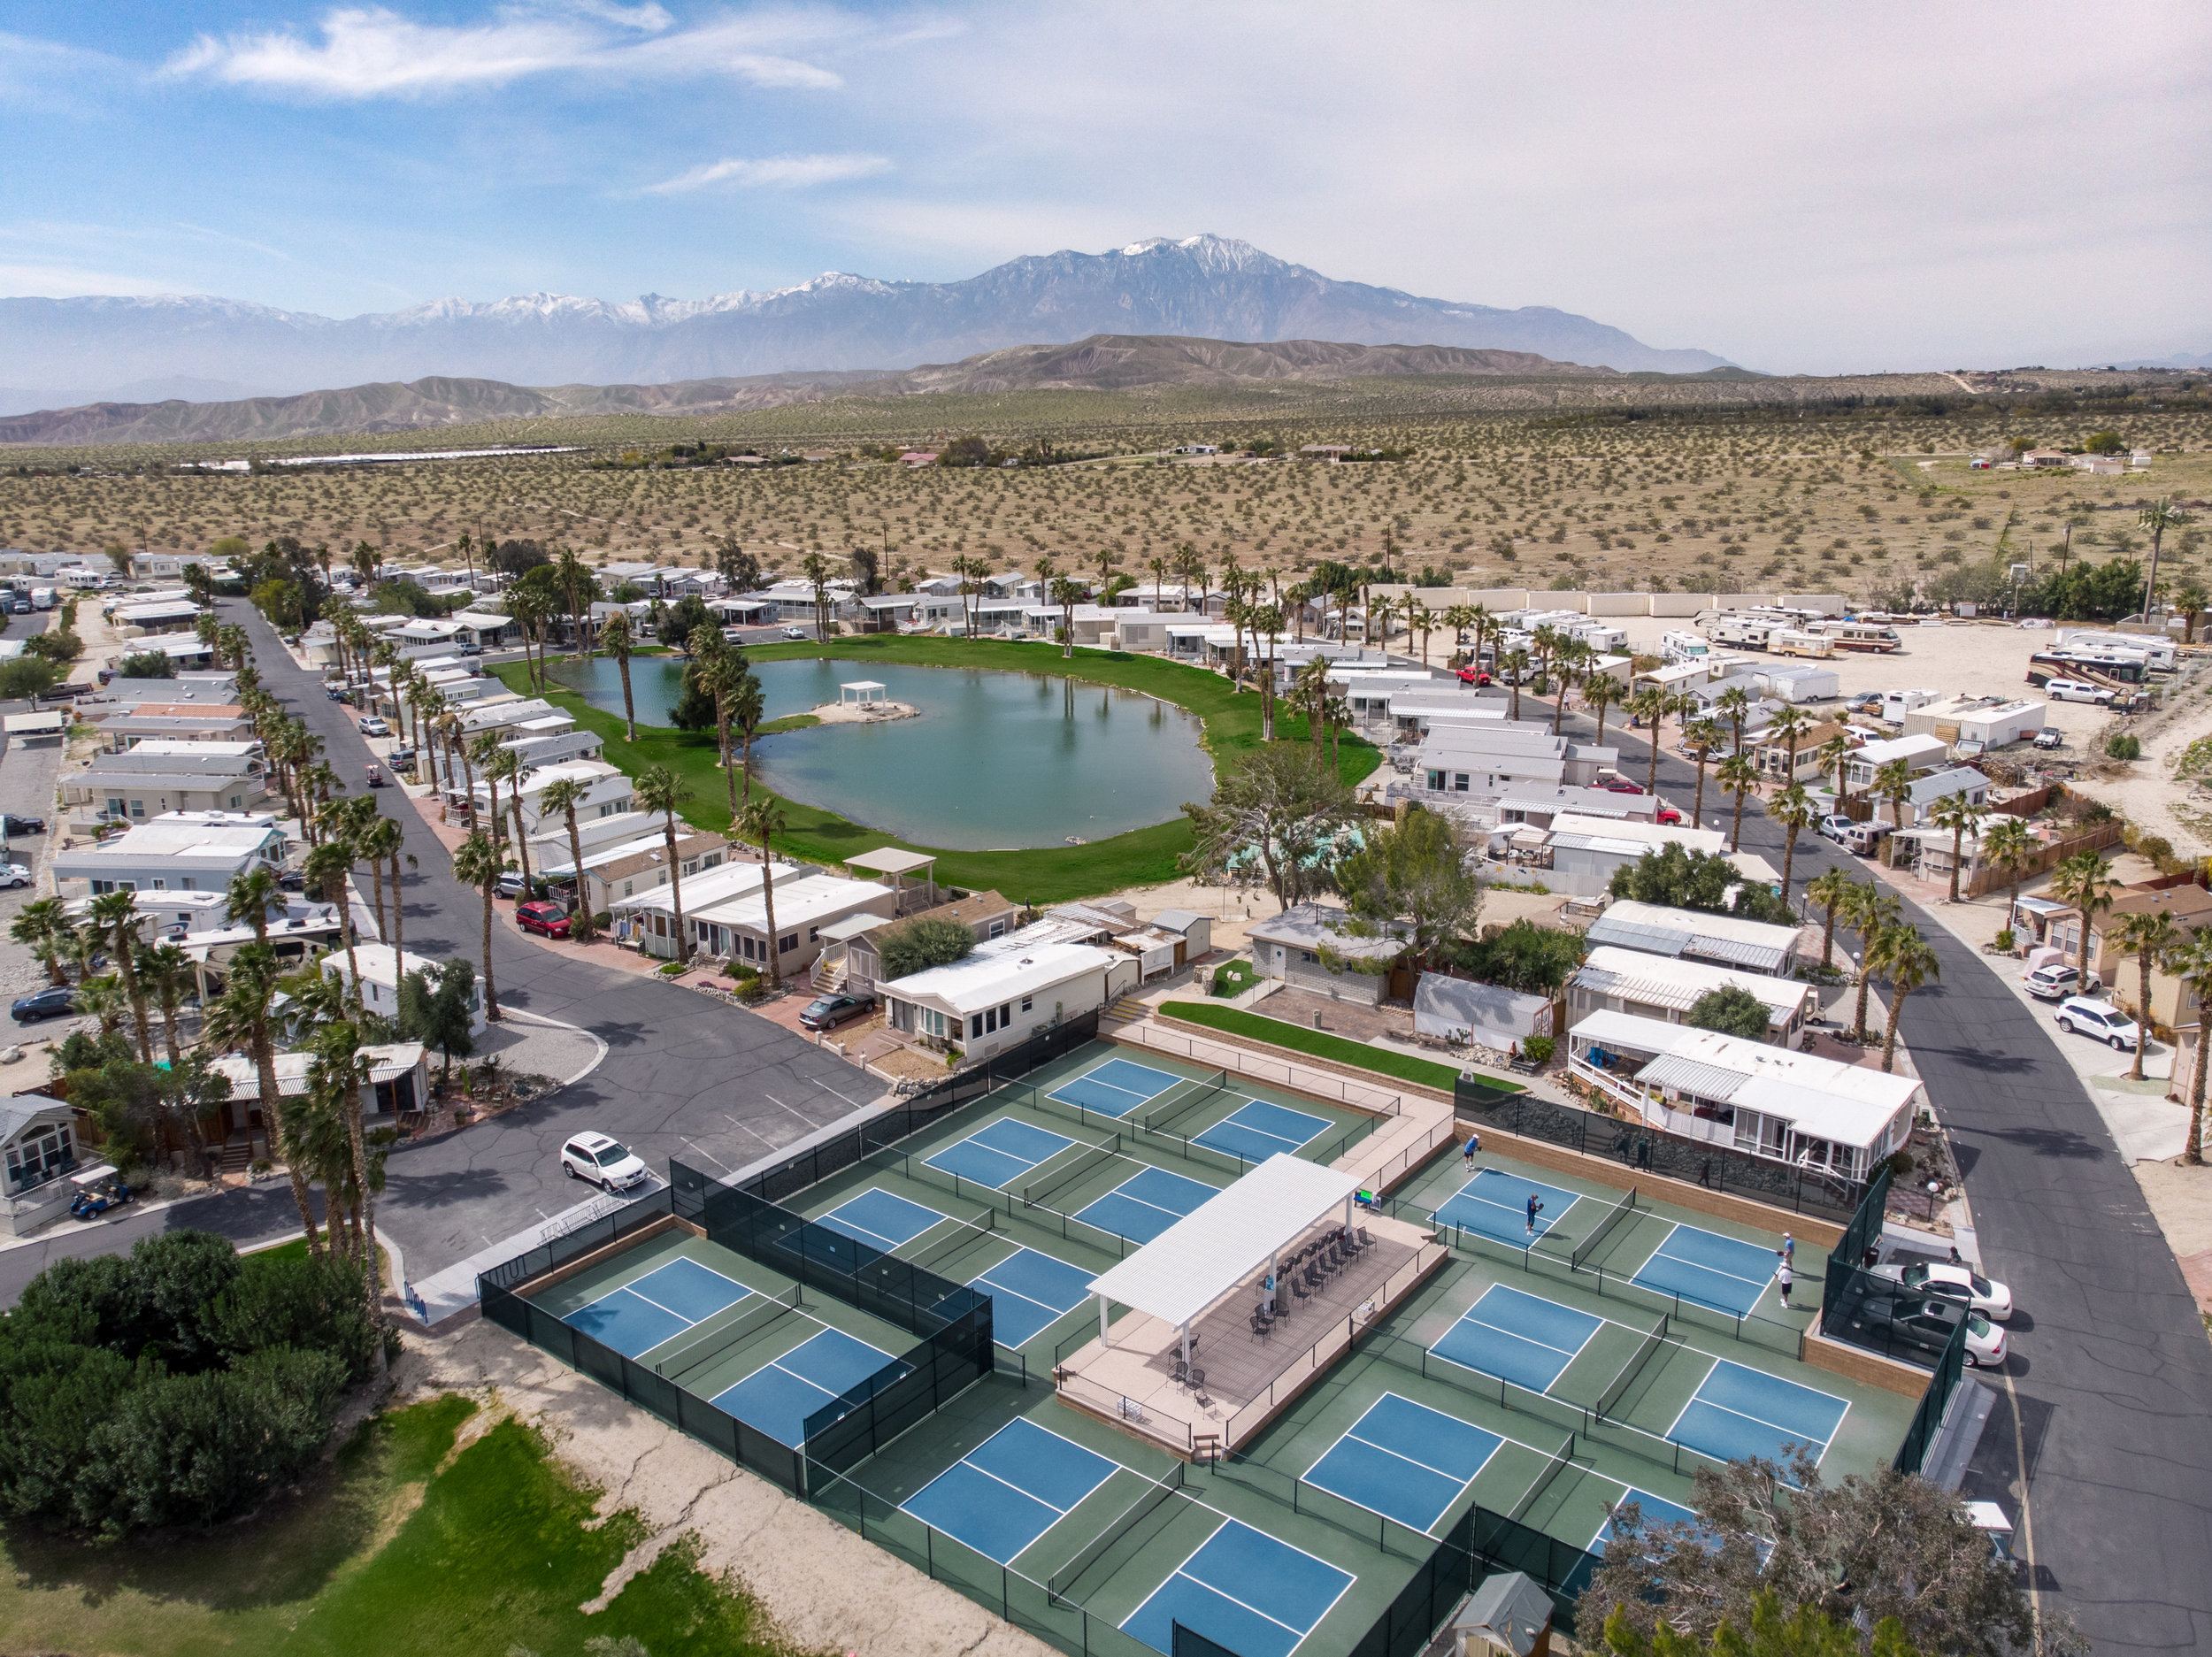 sky-valley-resort-aerial-view.jpg